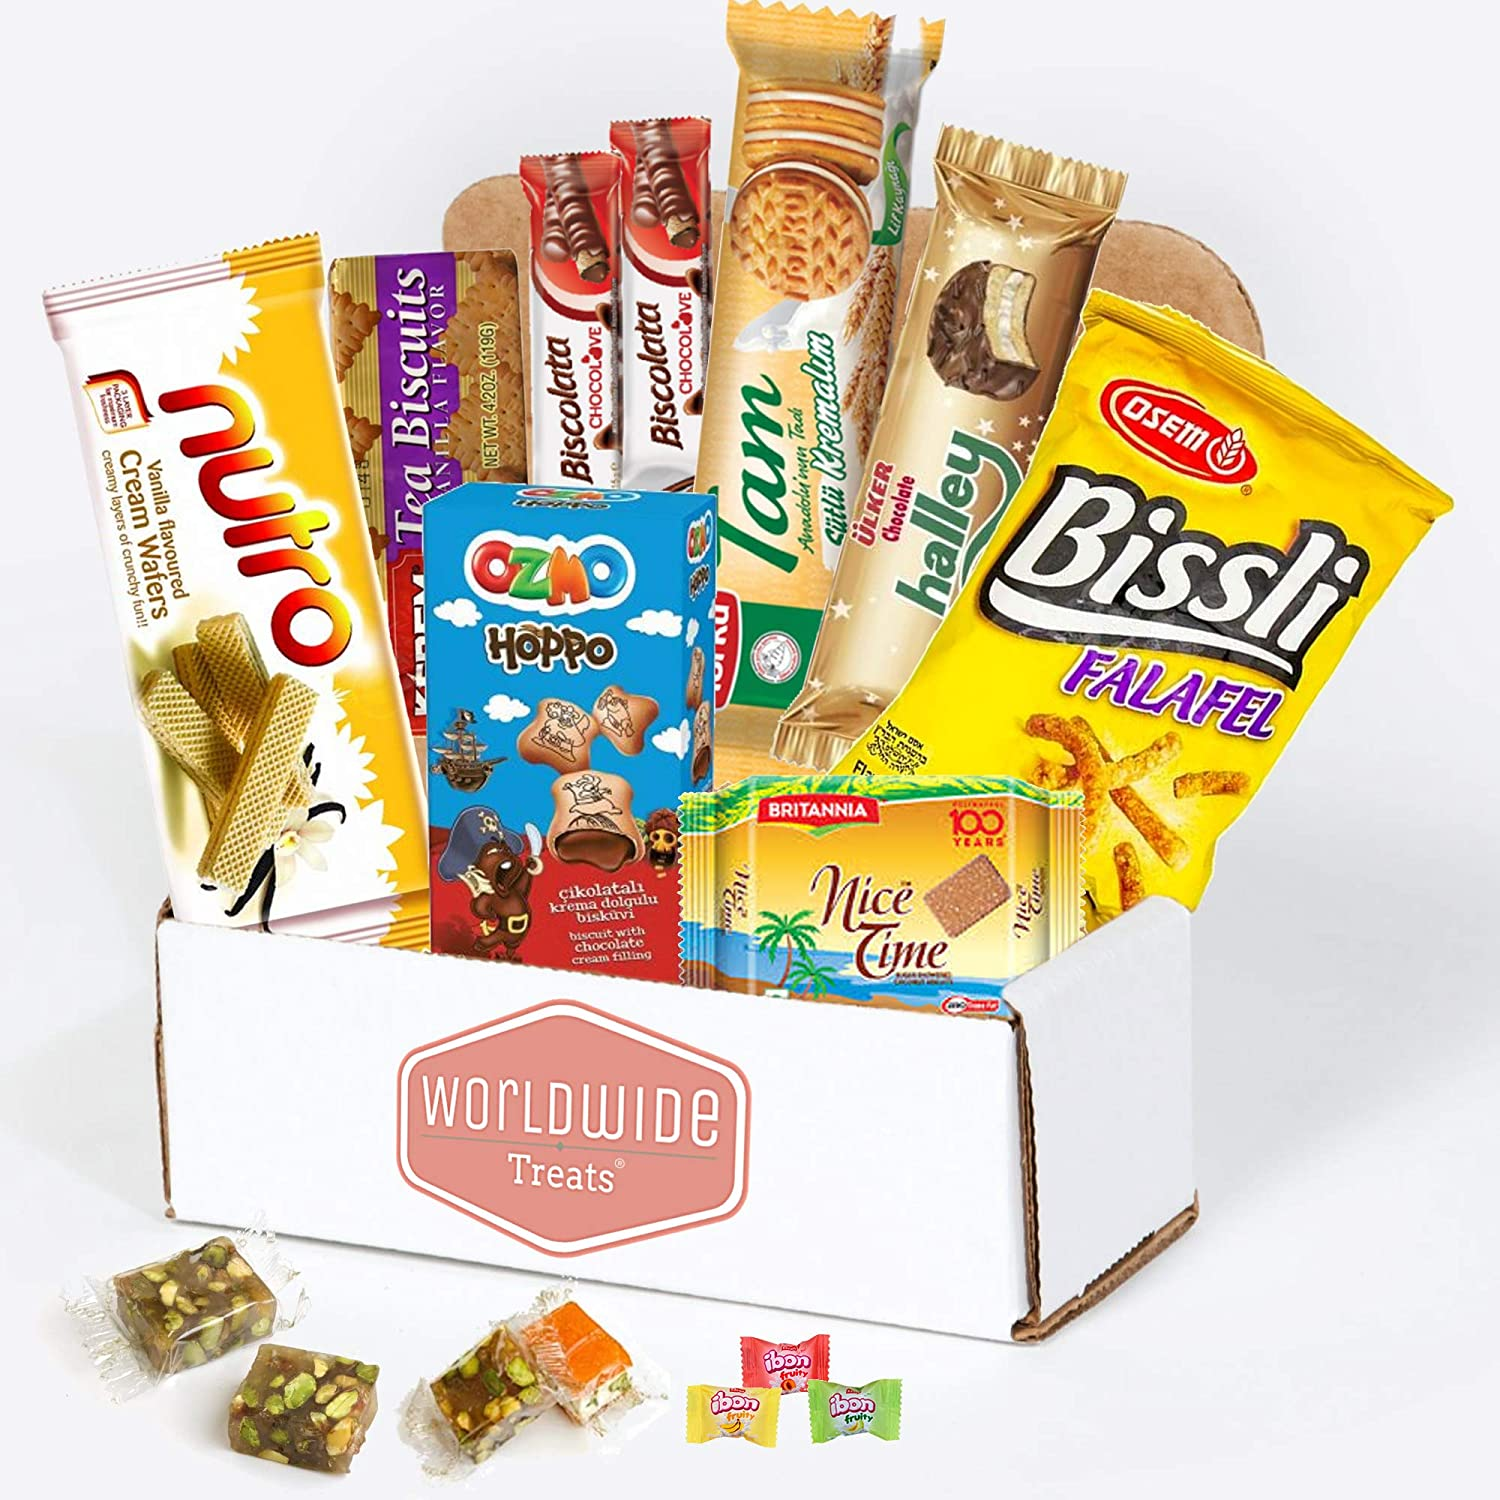 The Middle Eastern Snack Mix Package by WorldWideTreats - Snacks from Turkey, Israel, Palestine, UAE, Oman and more